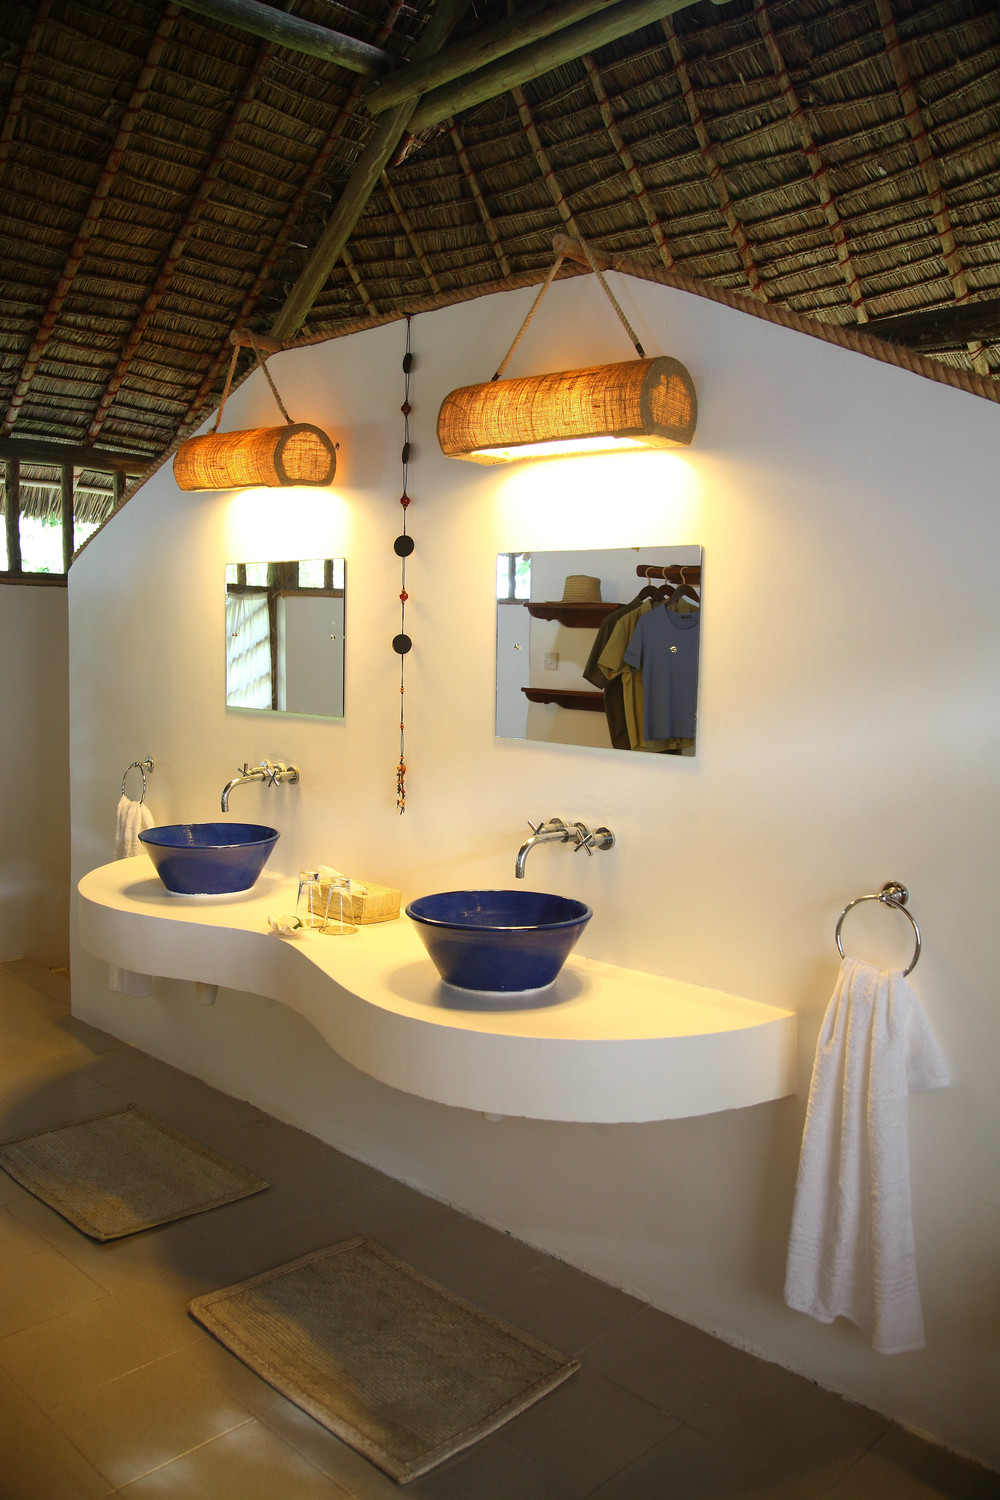 Bathroom at Ras Kutani.jpg